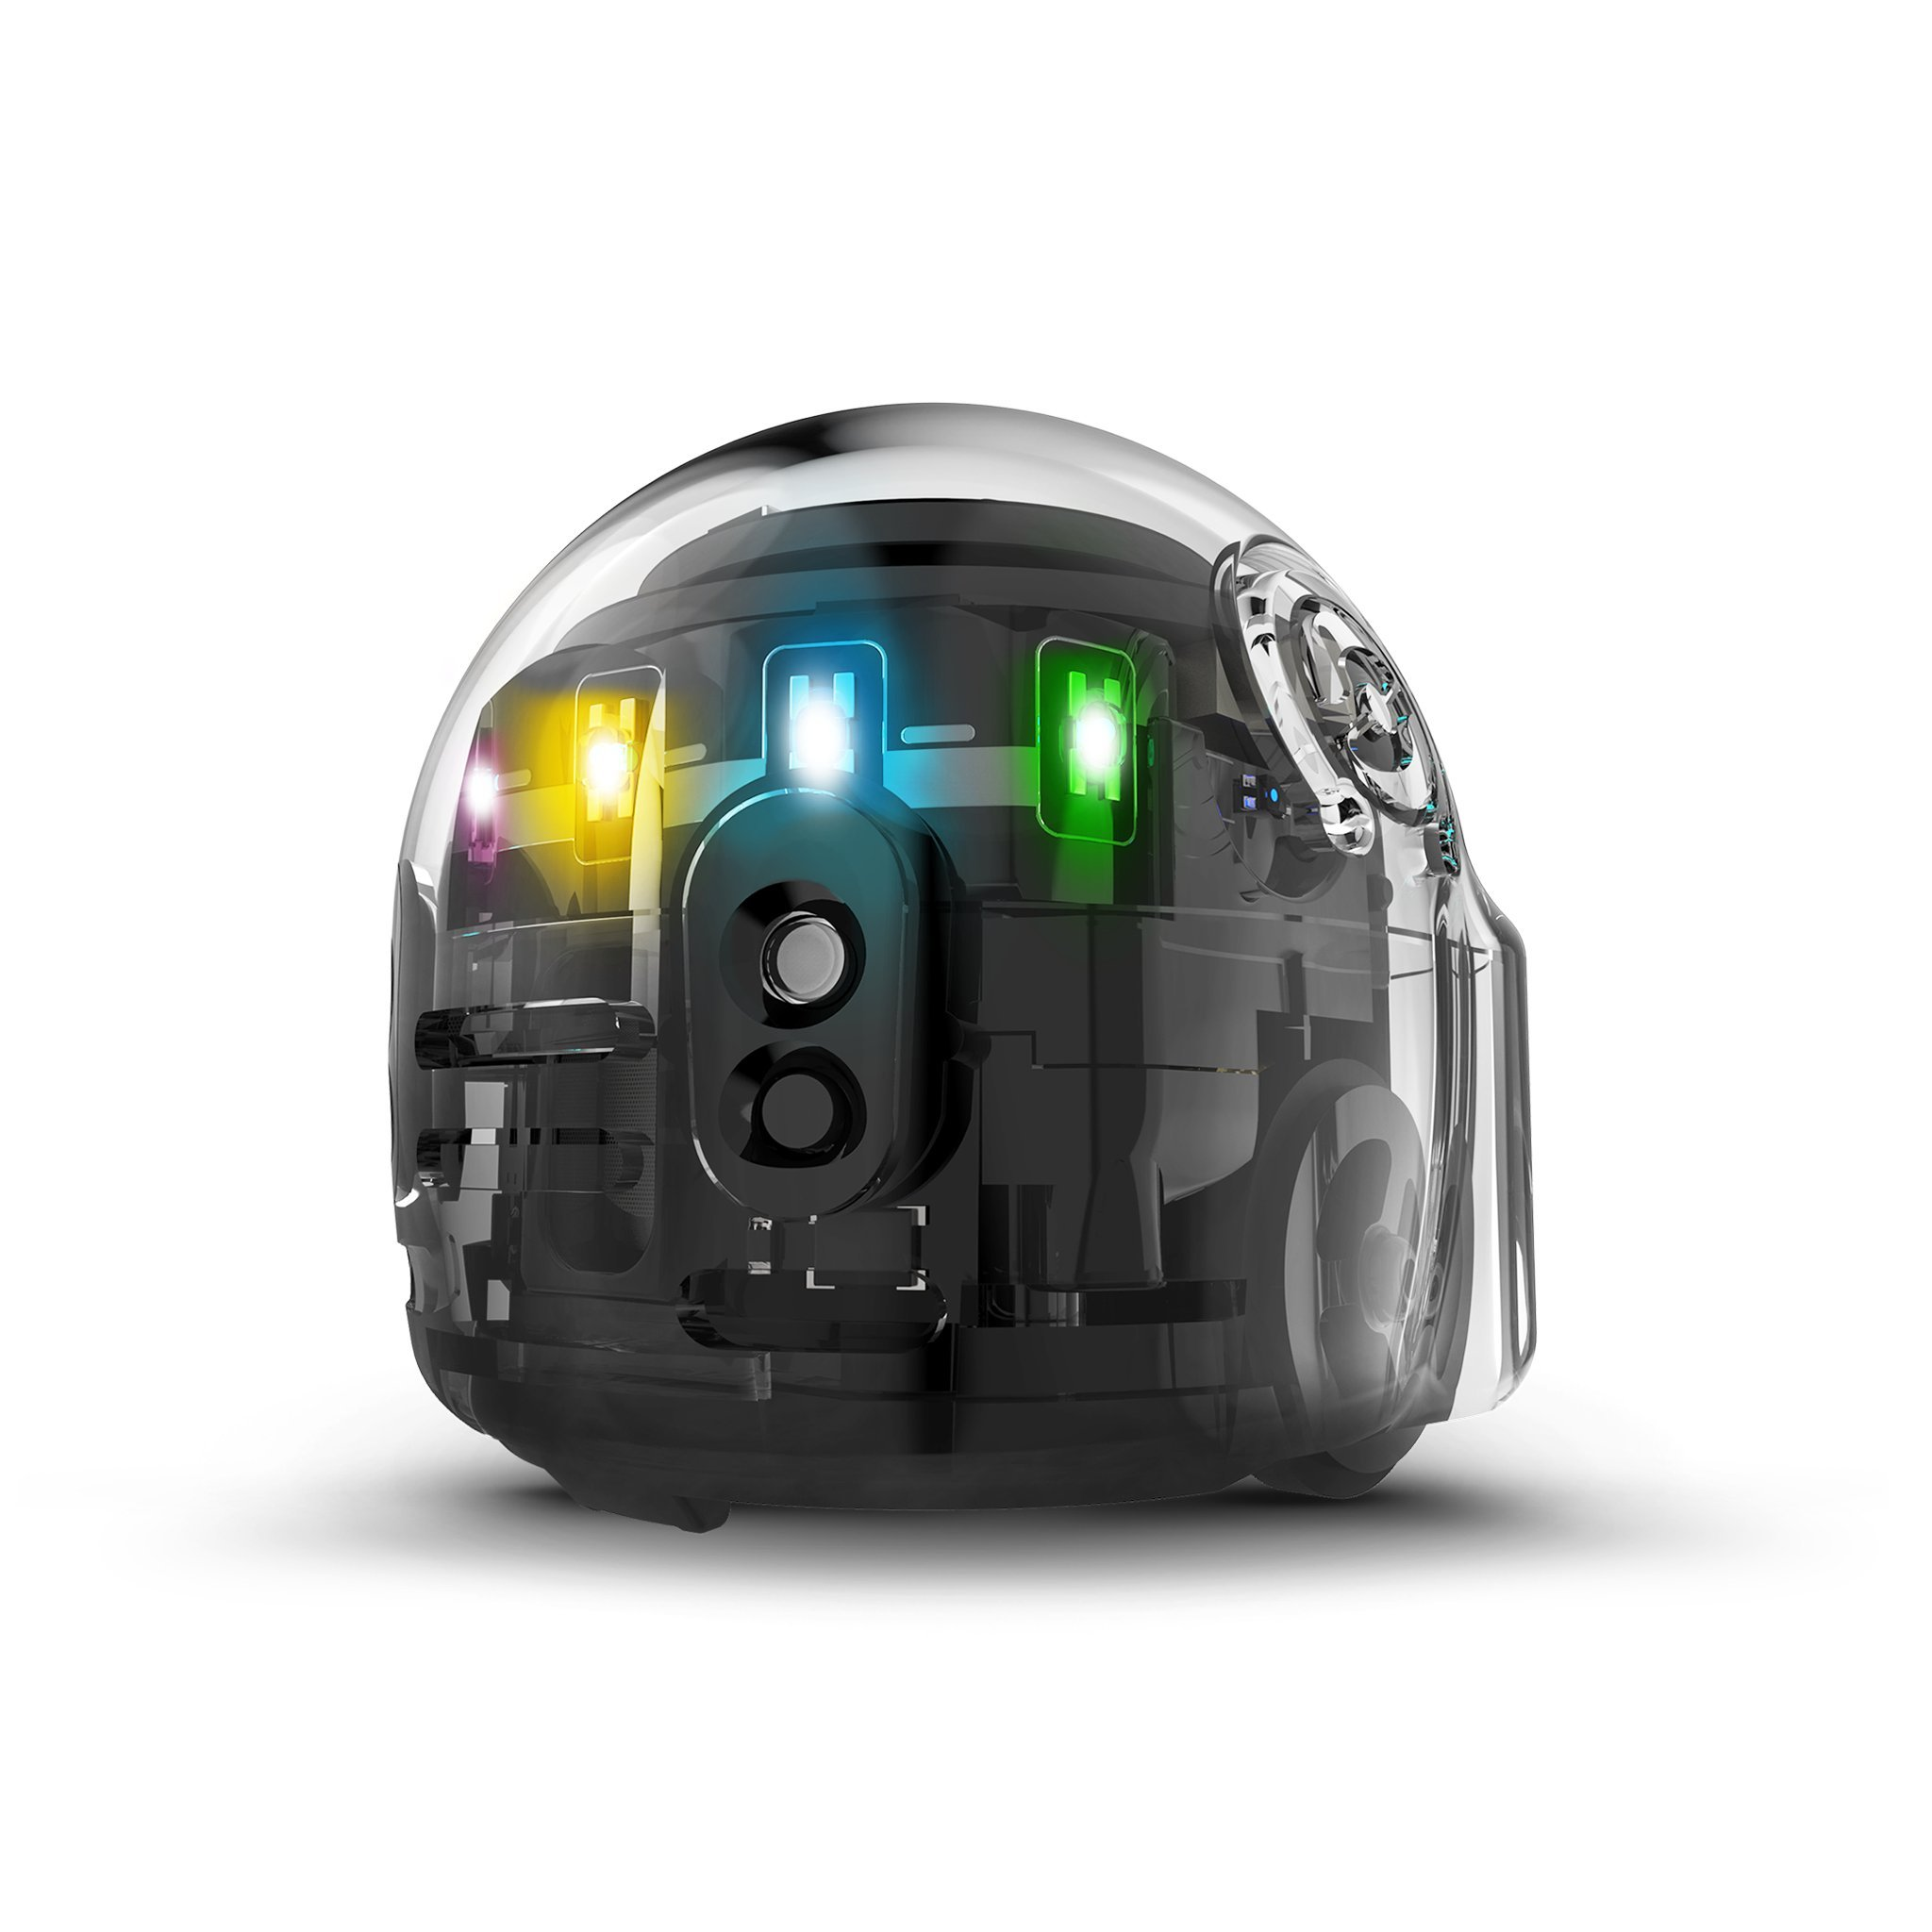 Evo App-Connected Coding Robot (Black) by Ozobot (Image #1)